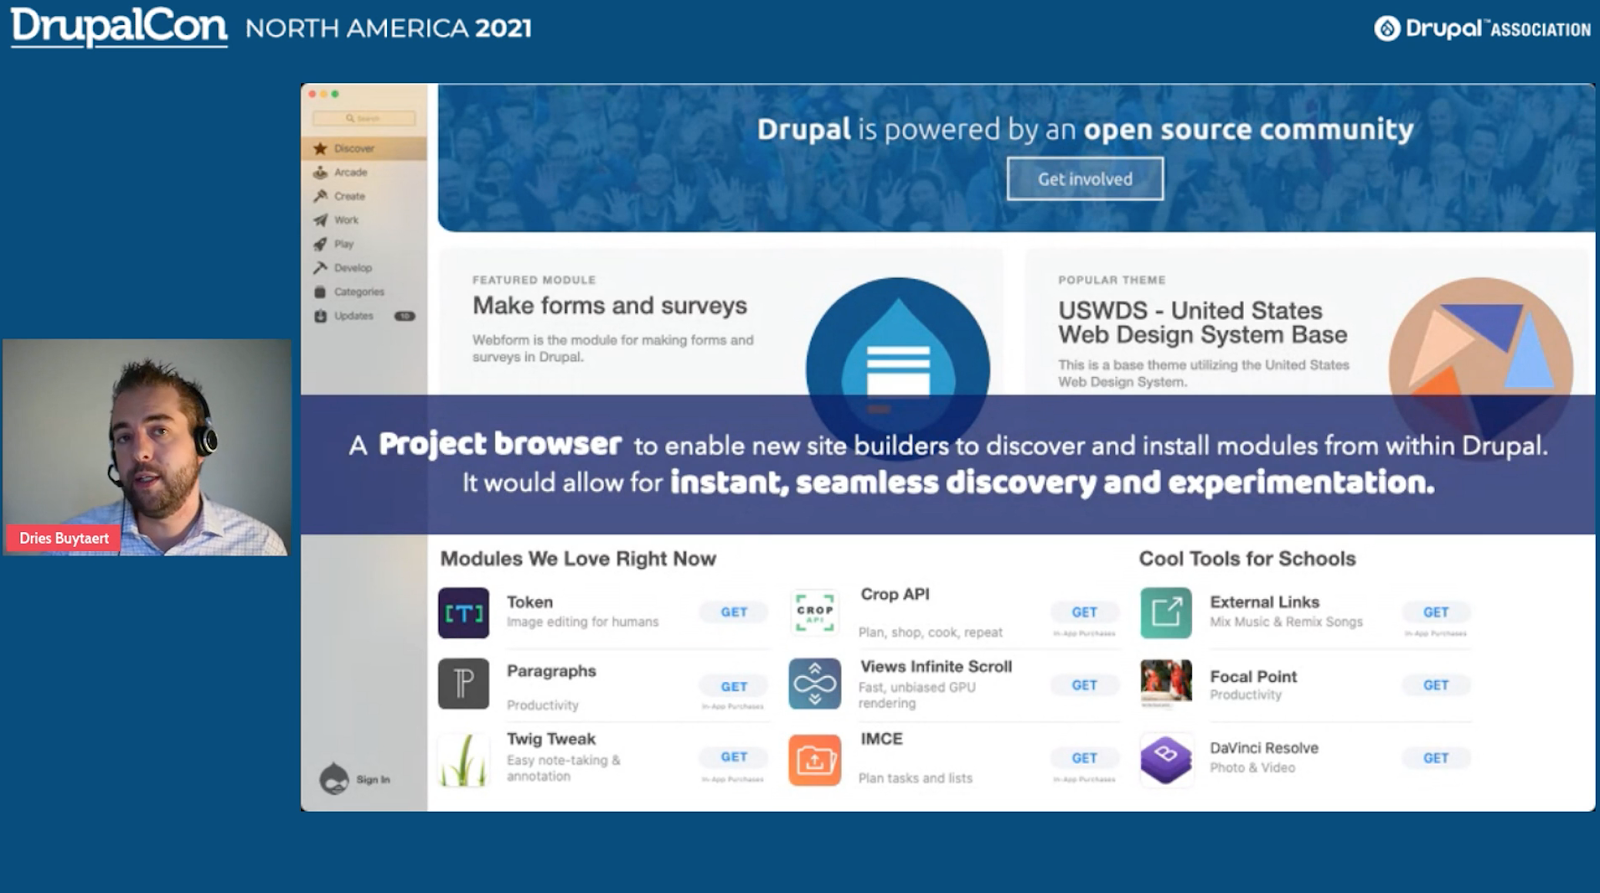 Drupal program browser initiative